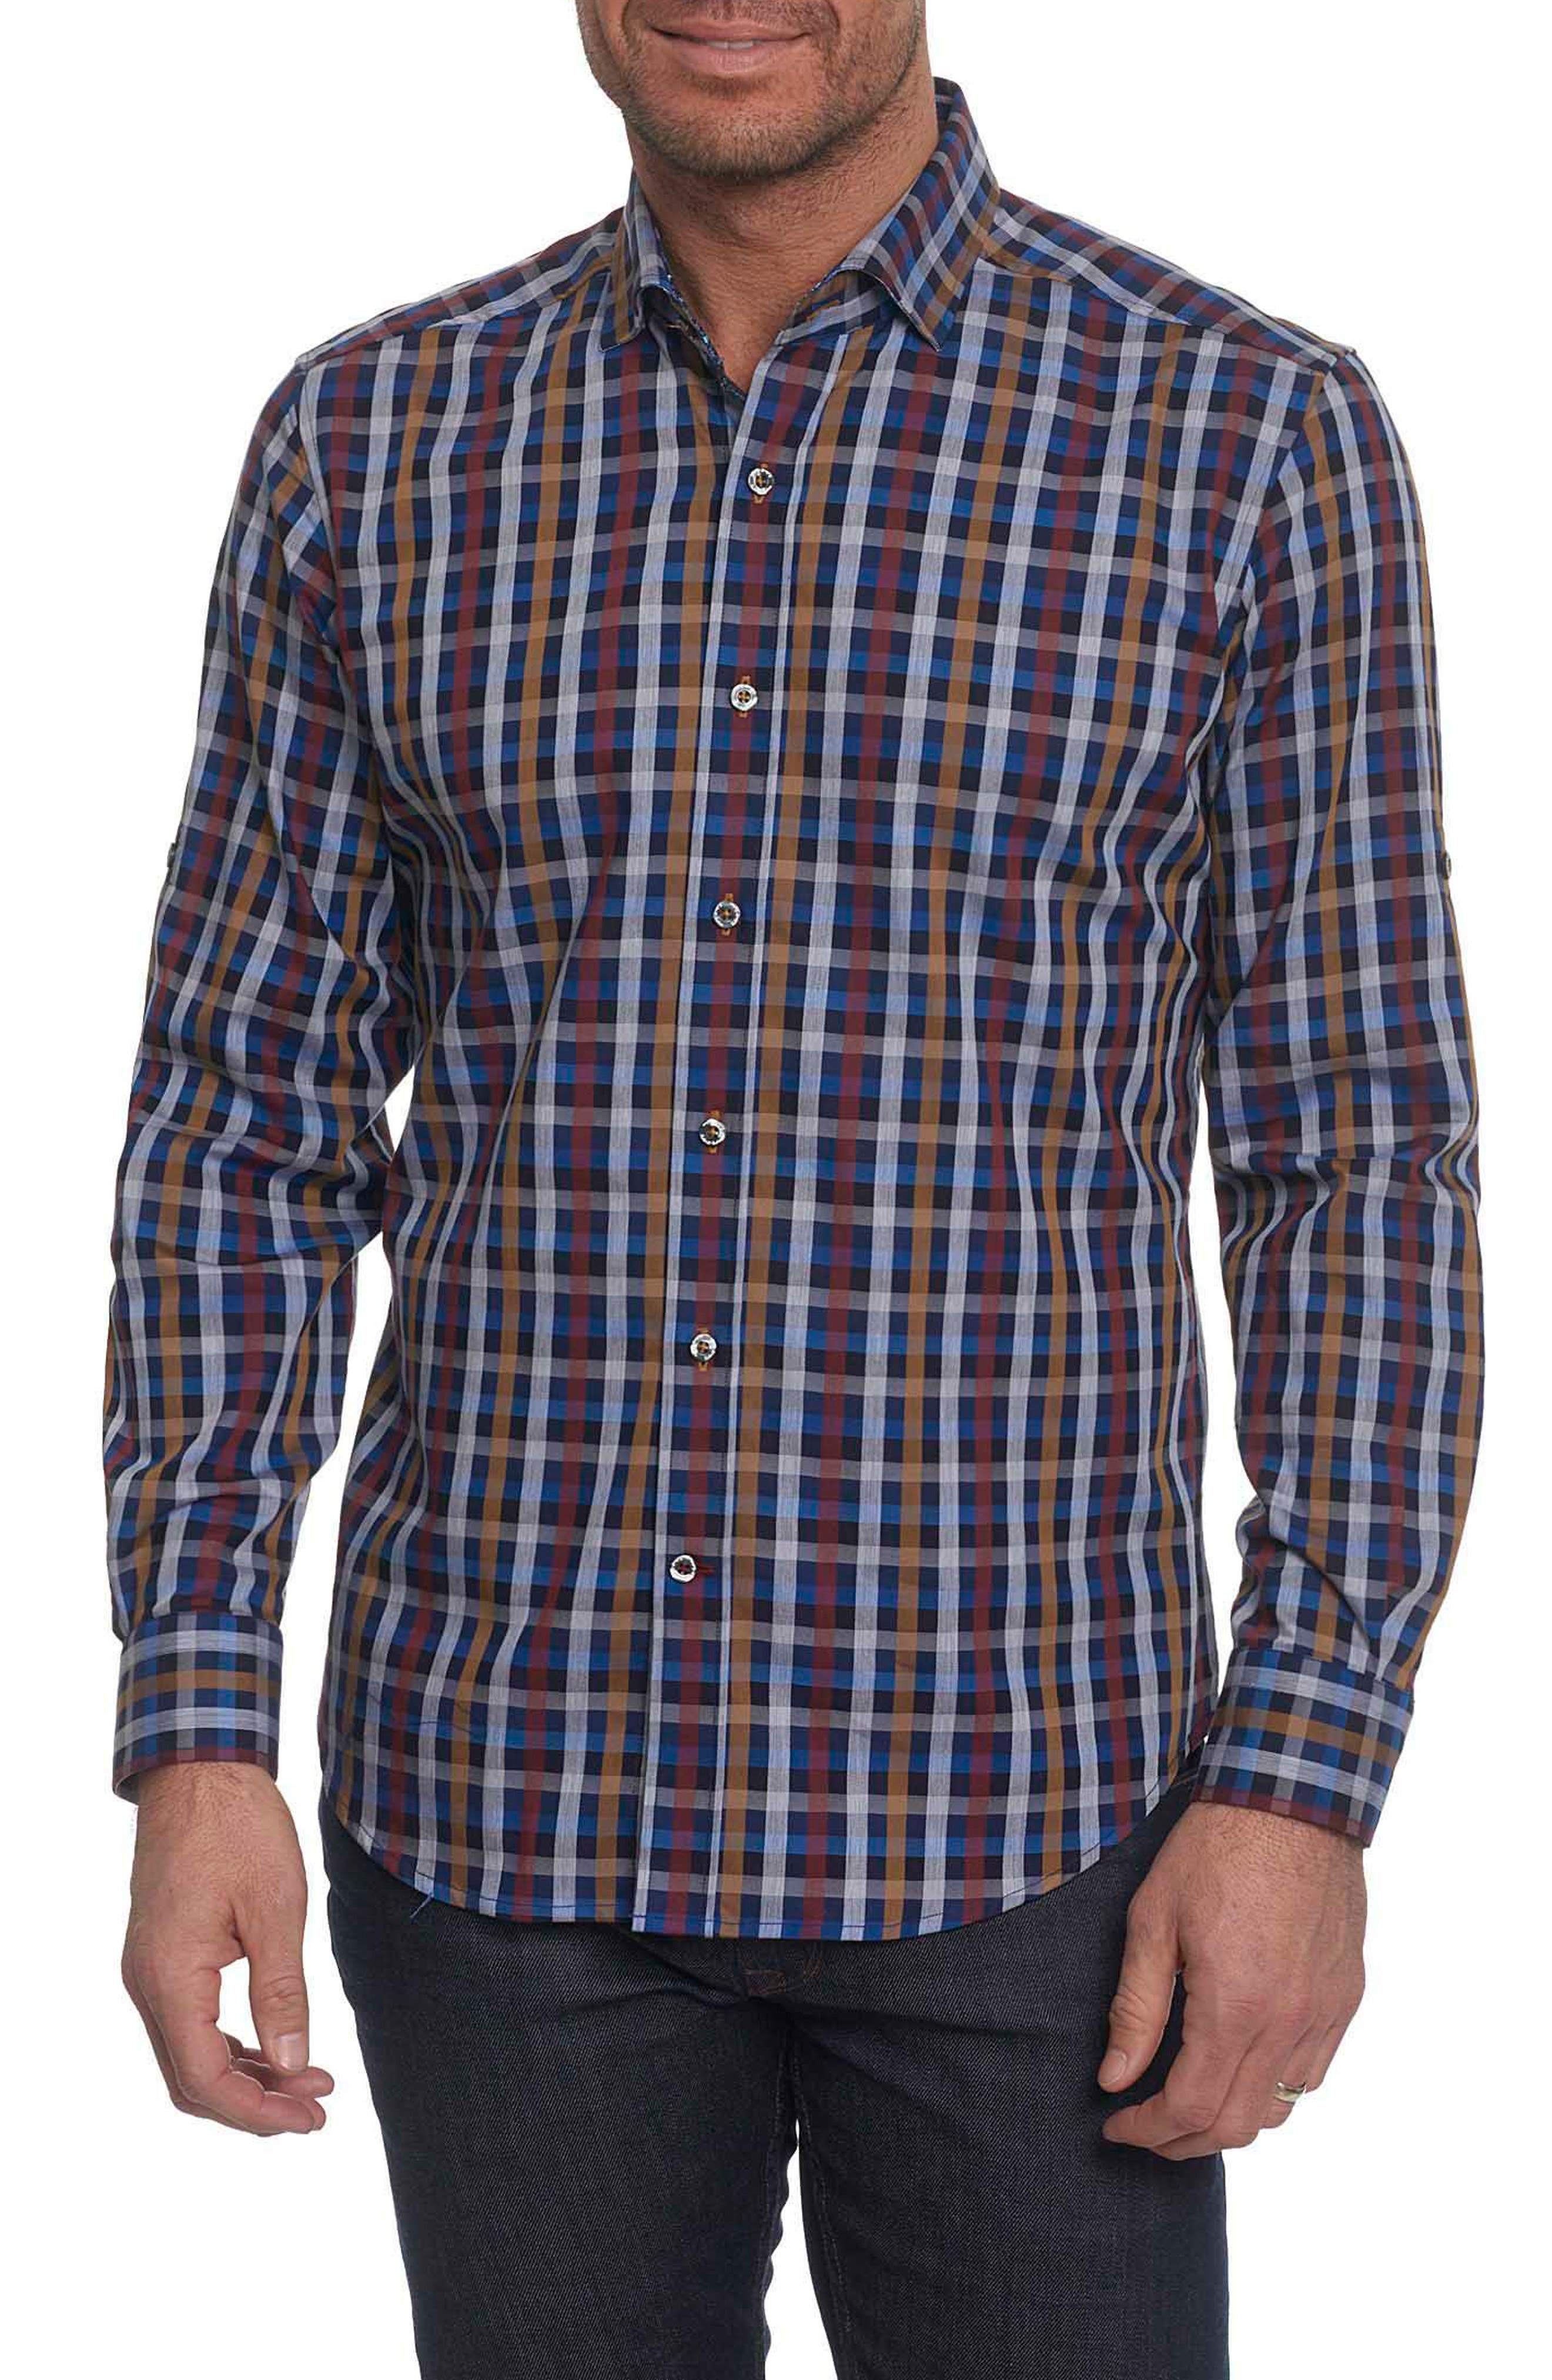 Carsons Tailored Fit Check Sport Shirt,                         Main,                         color, Blue